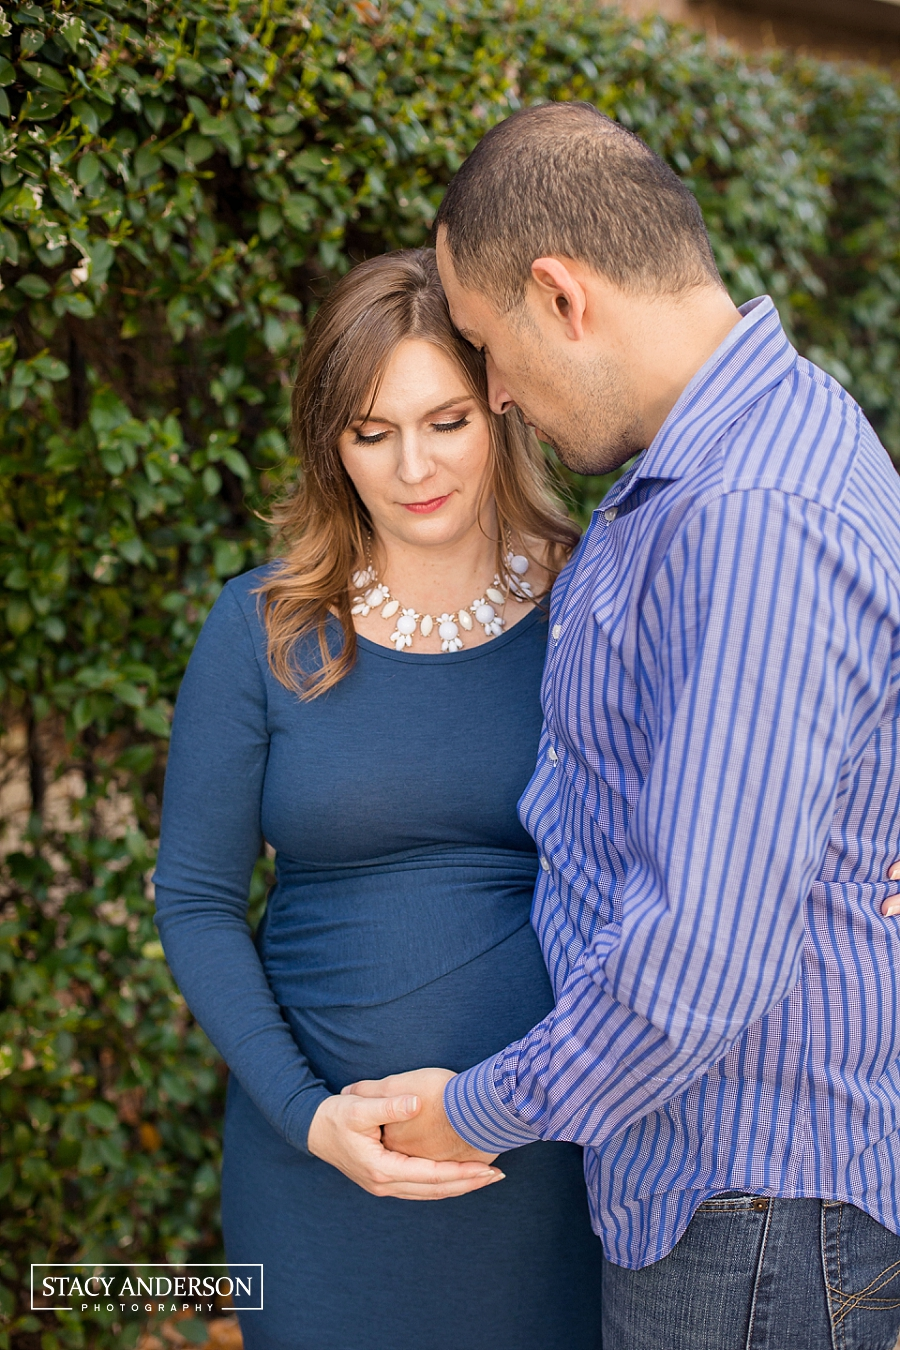 Stacy Anderson Photography Houston Maternity Photographer_1177